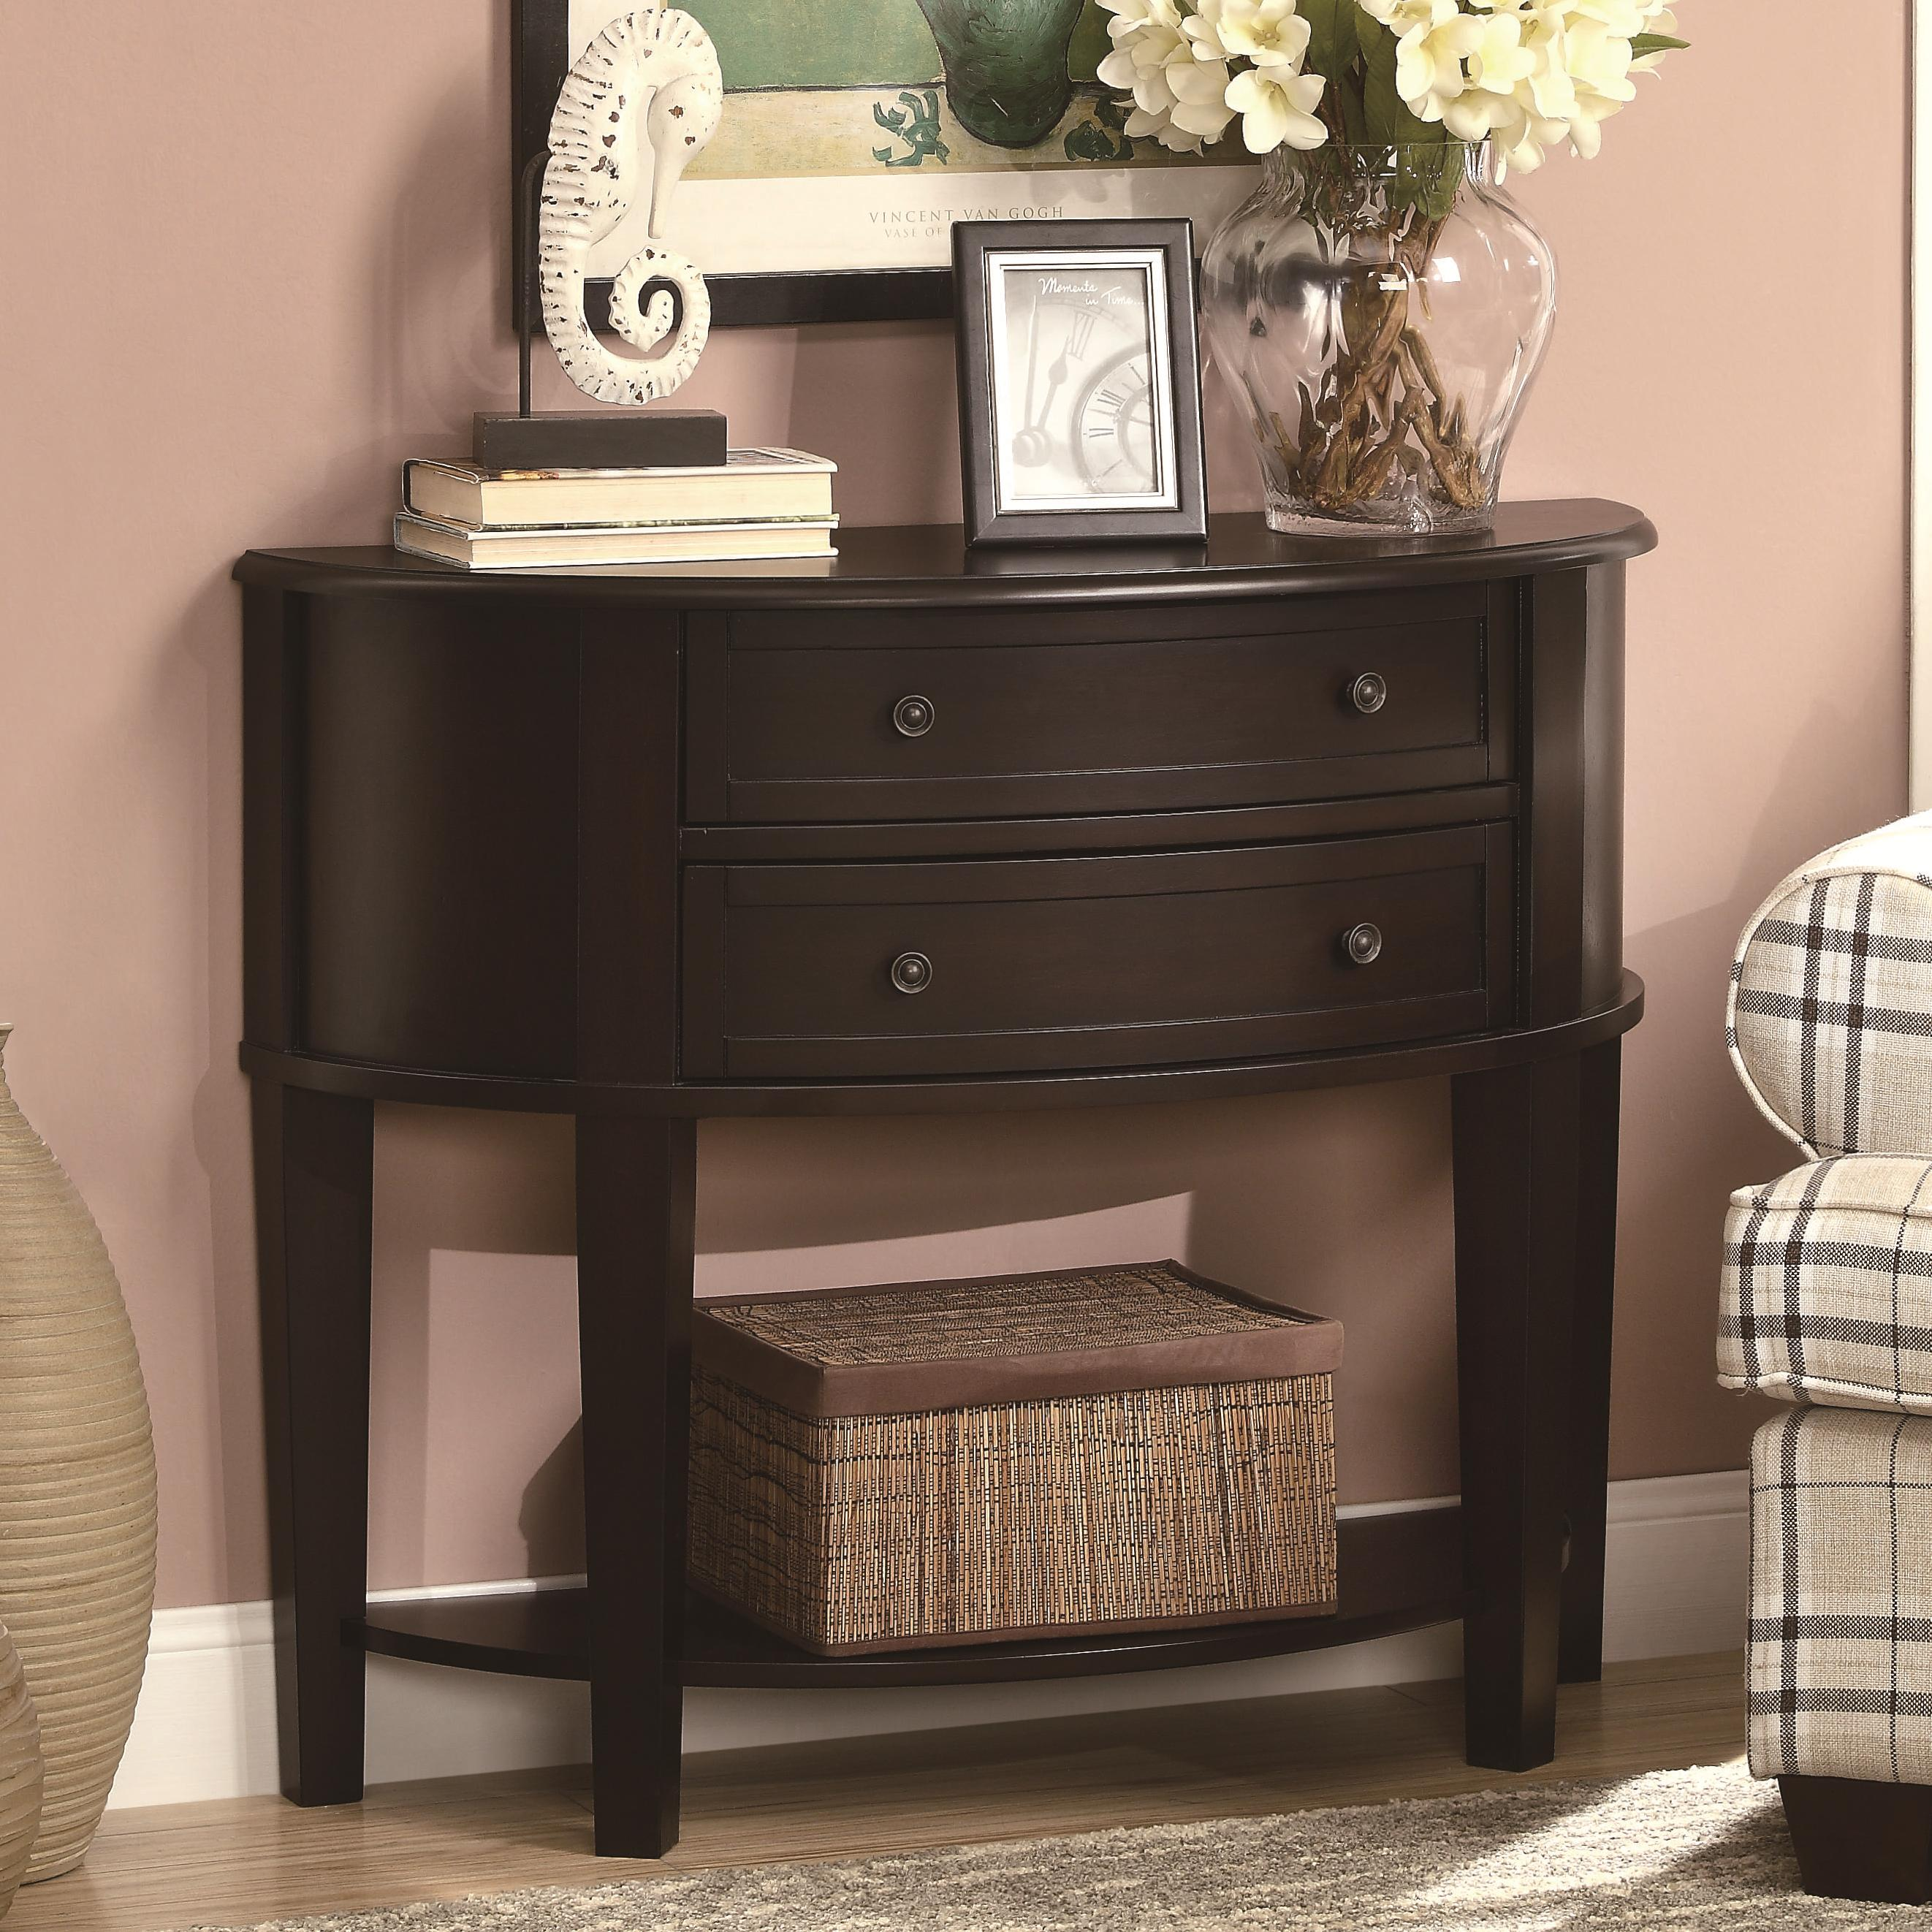 Coaster Accent Tables Entry Table - Item Number: 950156